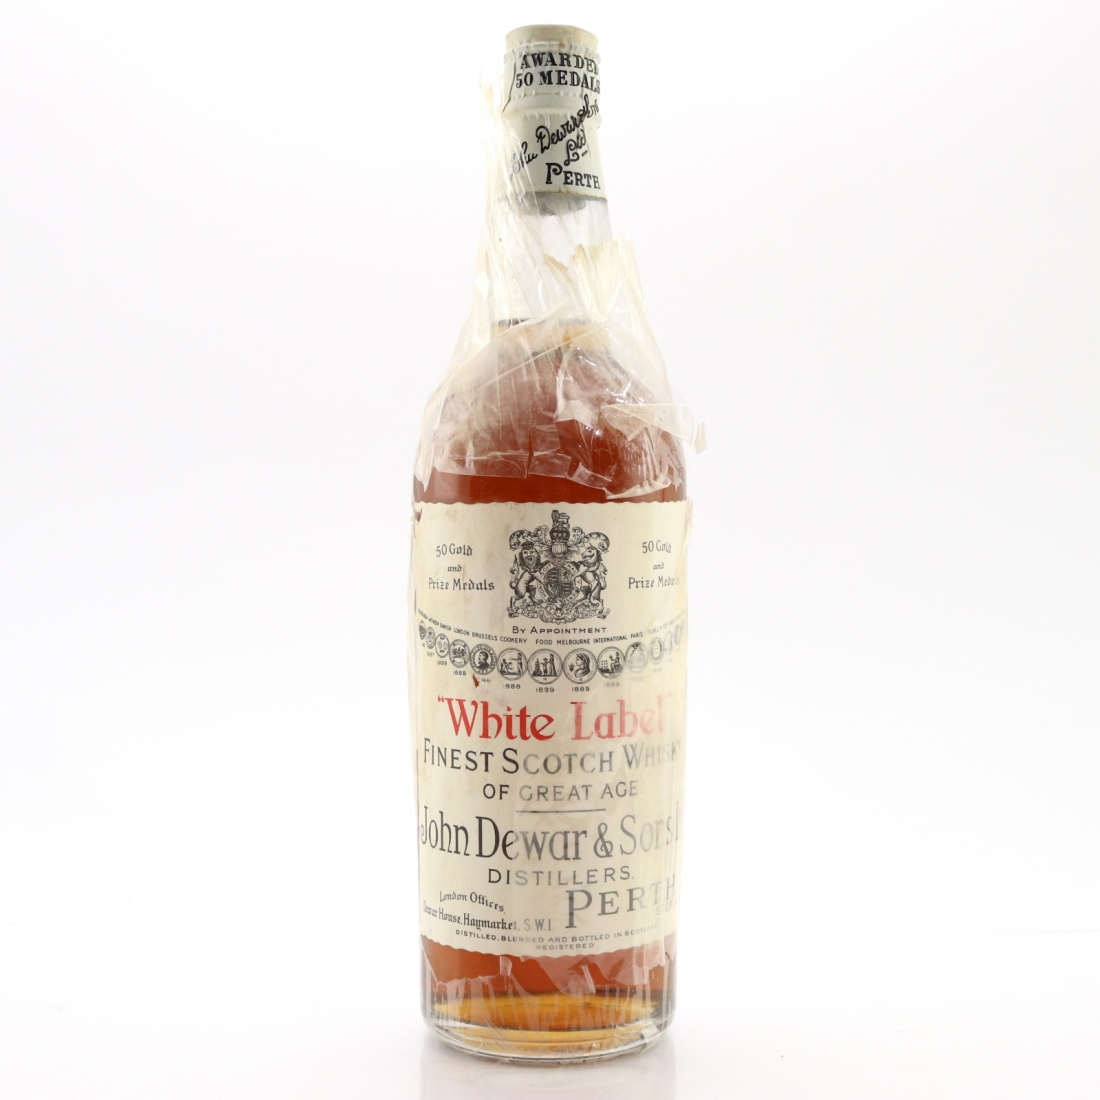 Dewar's White Label circa 1940s